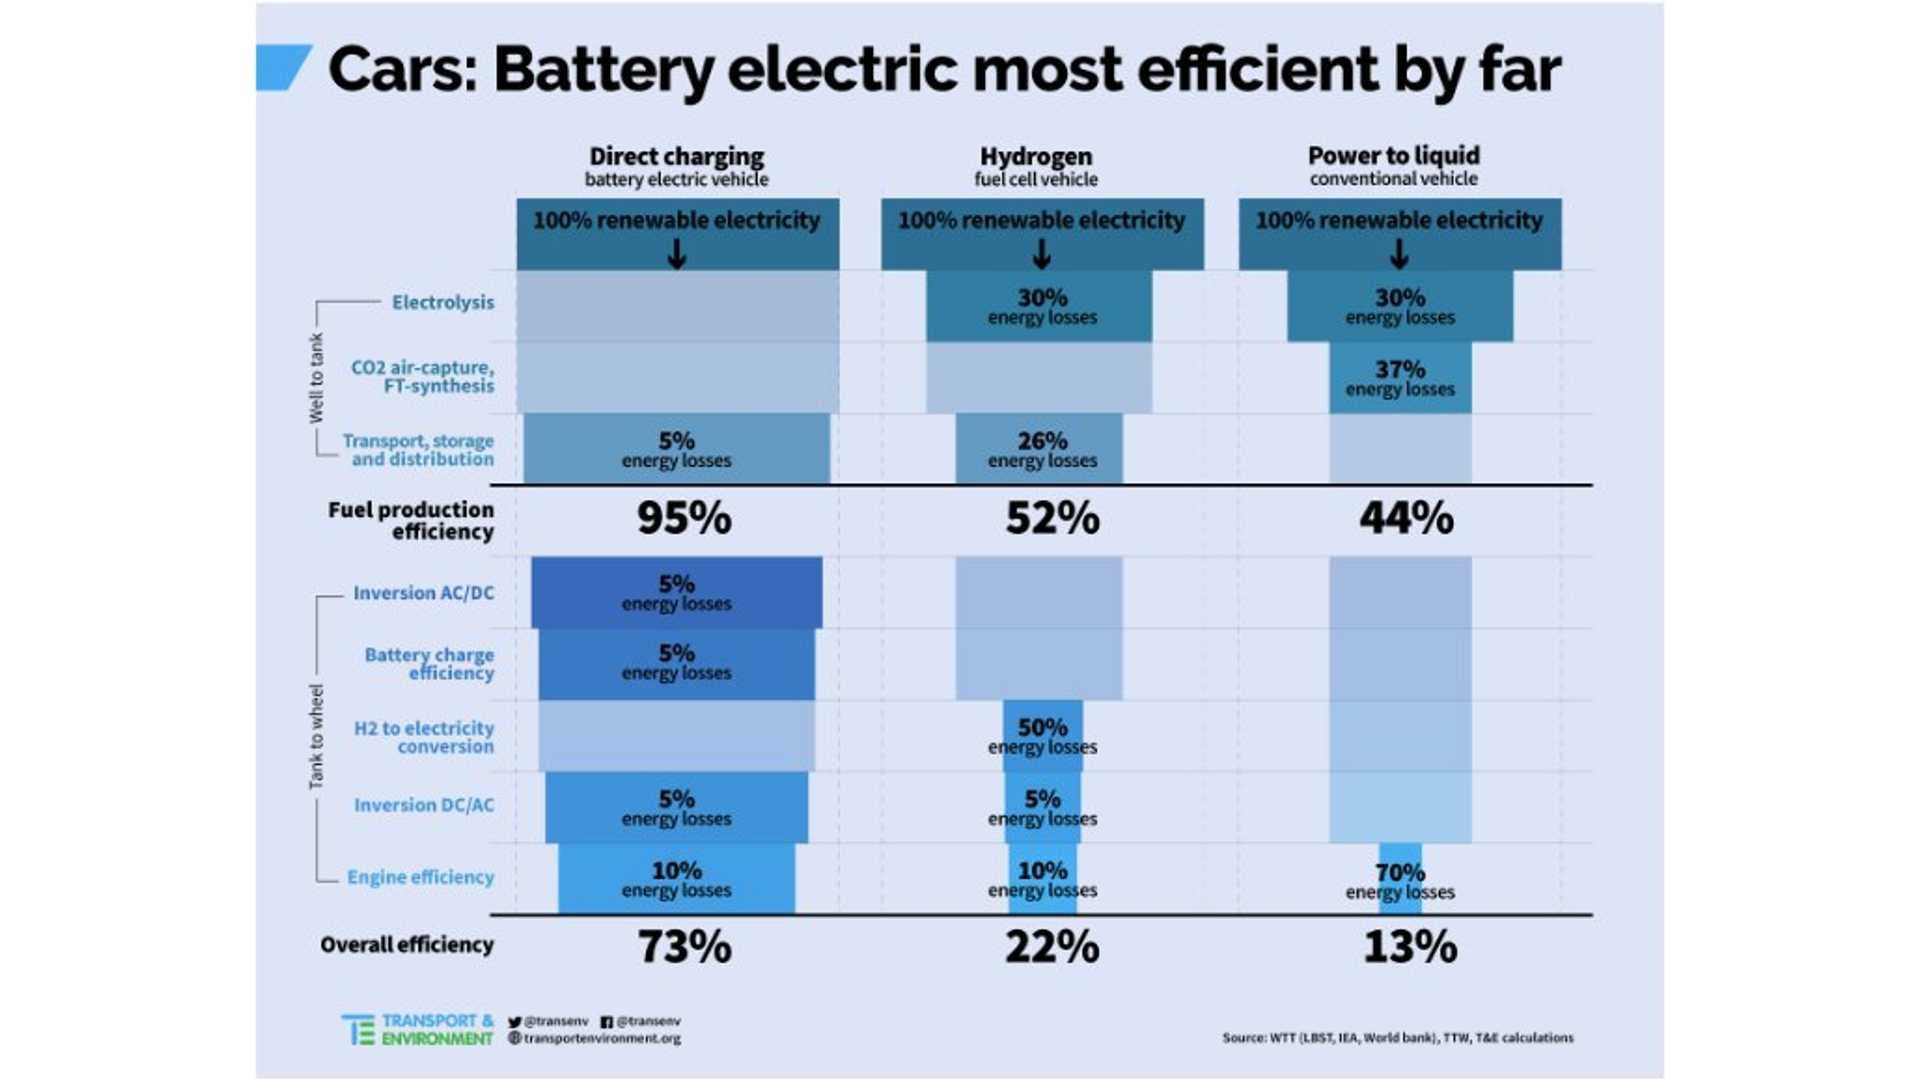 efficiency-compared-battery-electric-73-hydrogen-22-ice-13.jpg